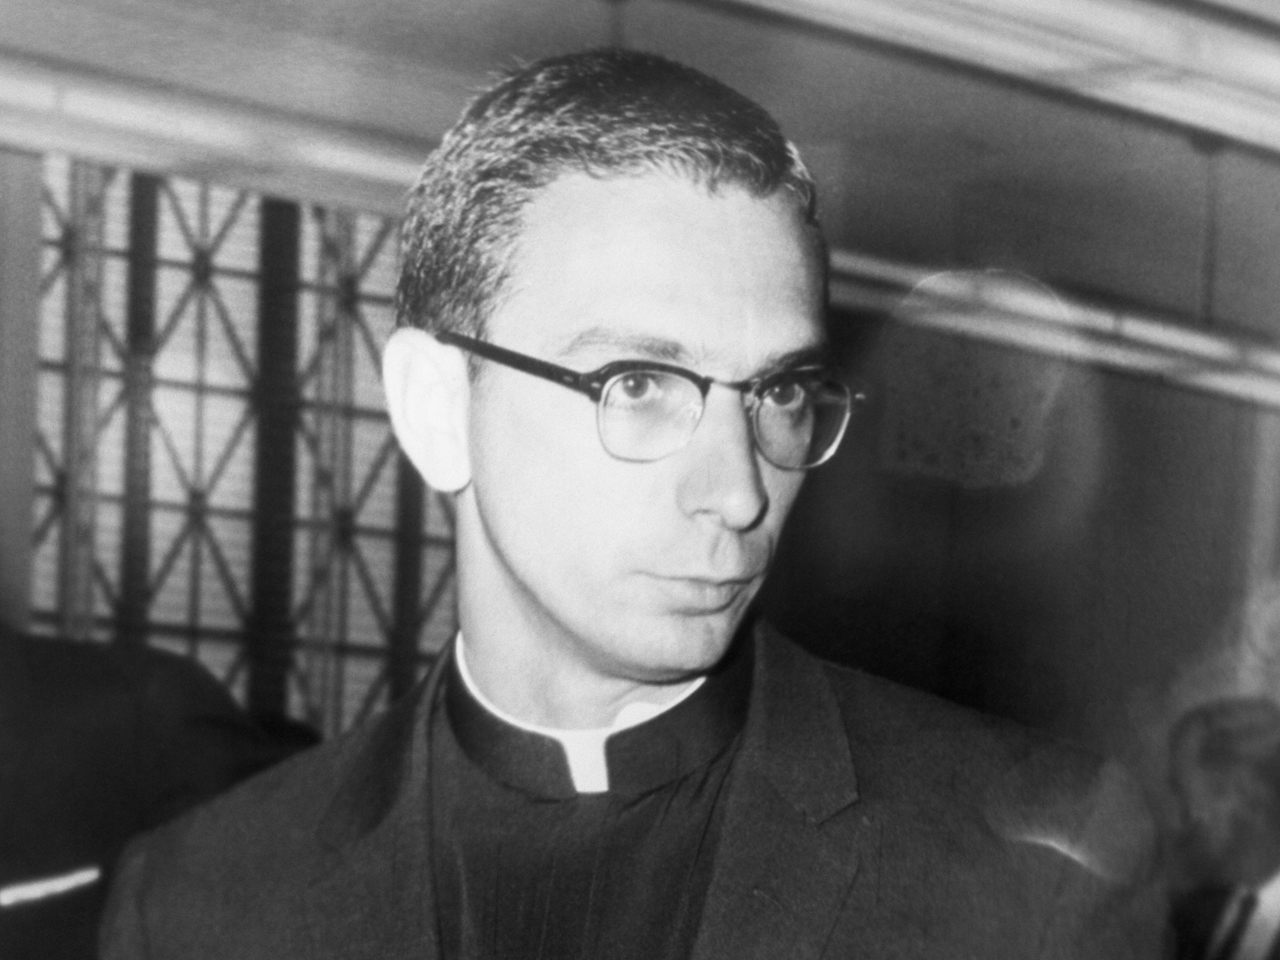 Church officials shielded priest suspected of murder for decades